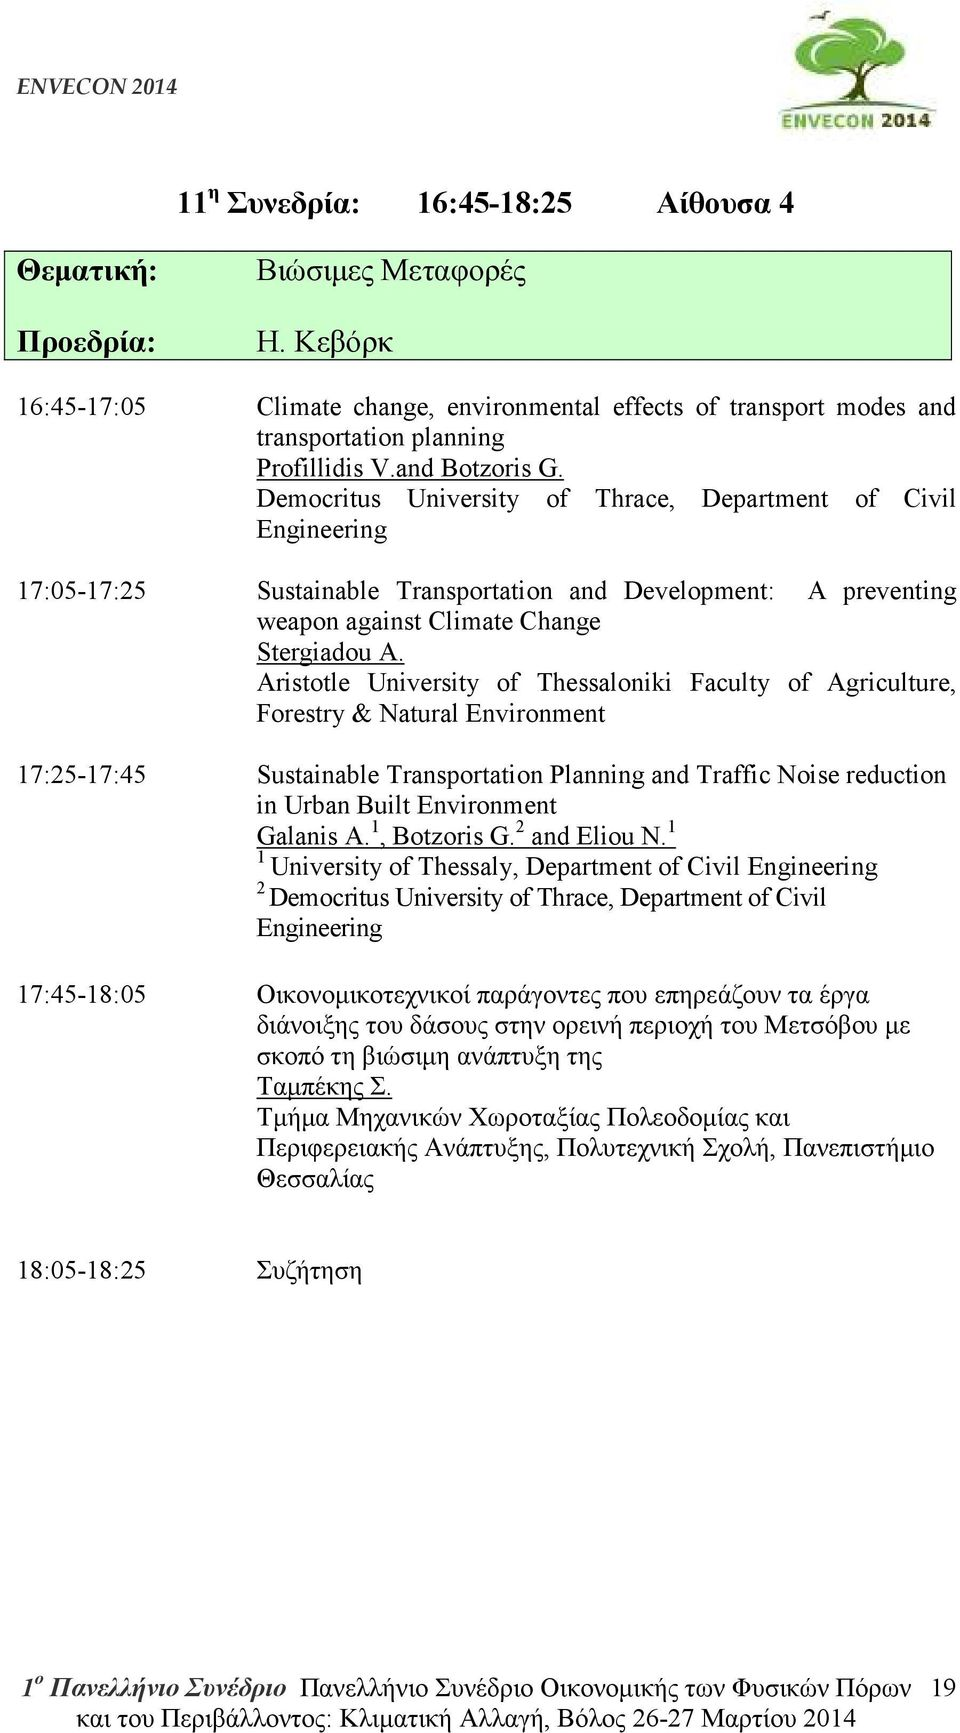 Aristotle University of Thessaloniki Faculty of Agriculture, Forestry & Natural Environment 17:25-17:45 Sustainable Transportation Planning and Traffic Noise reduction in Urban Built Environment